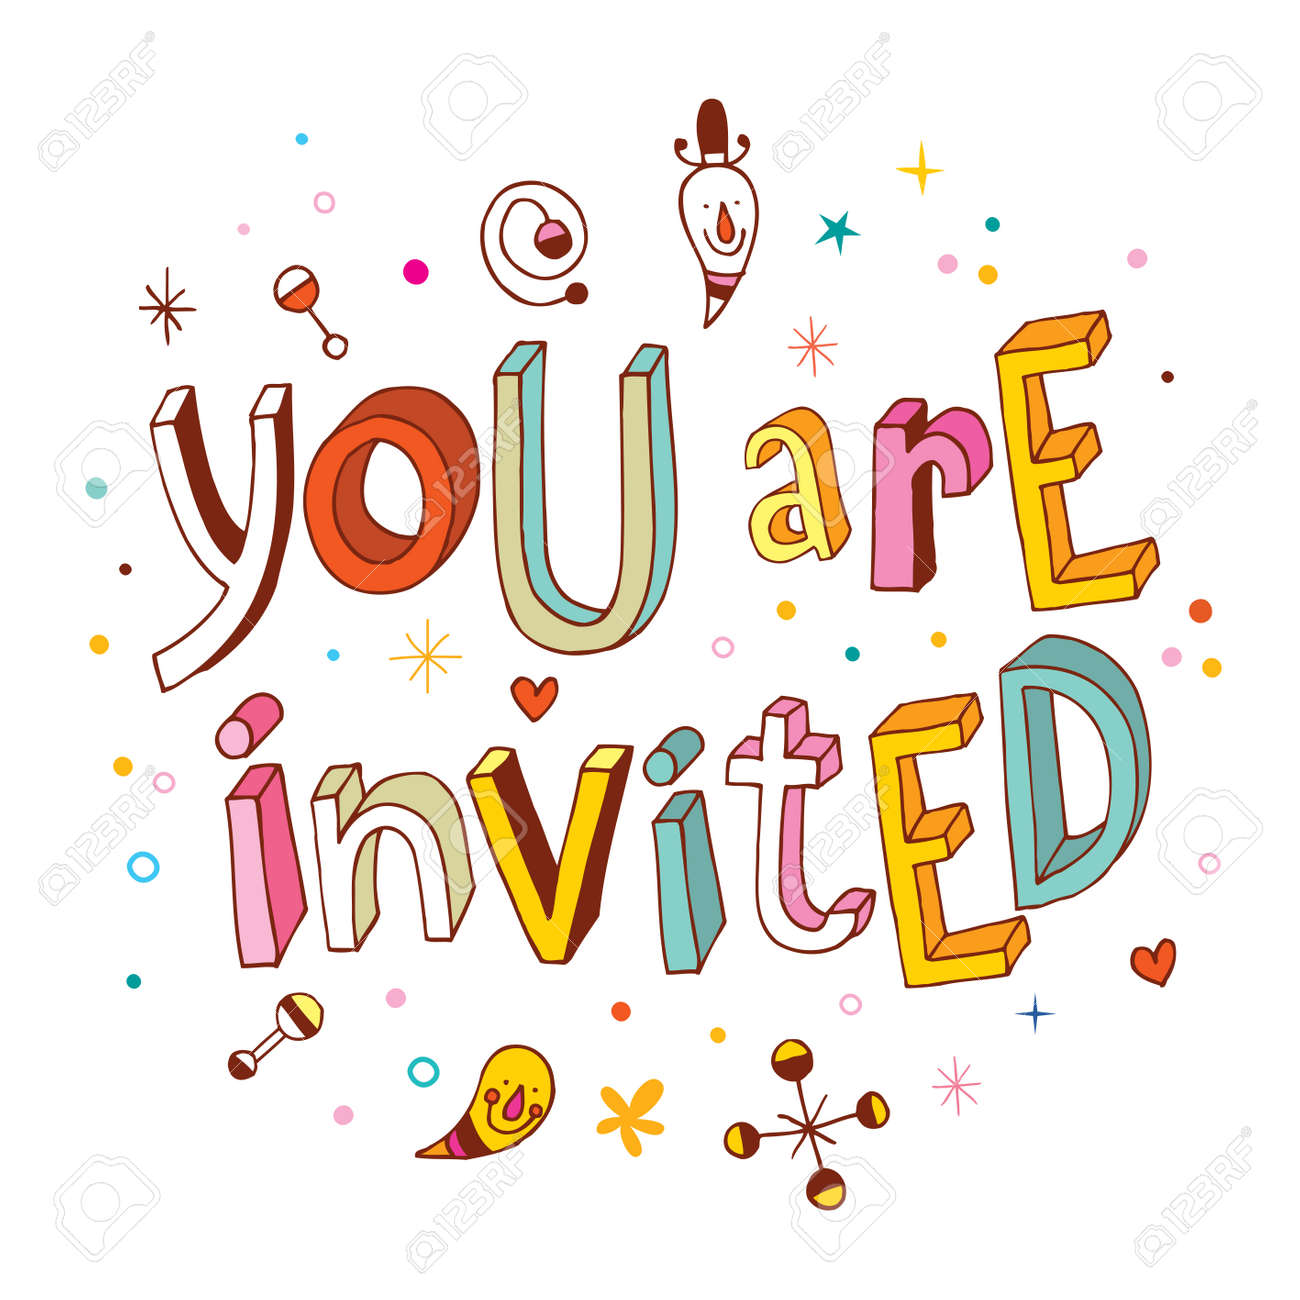 You are invited - 56252872